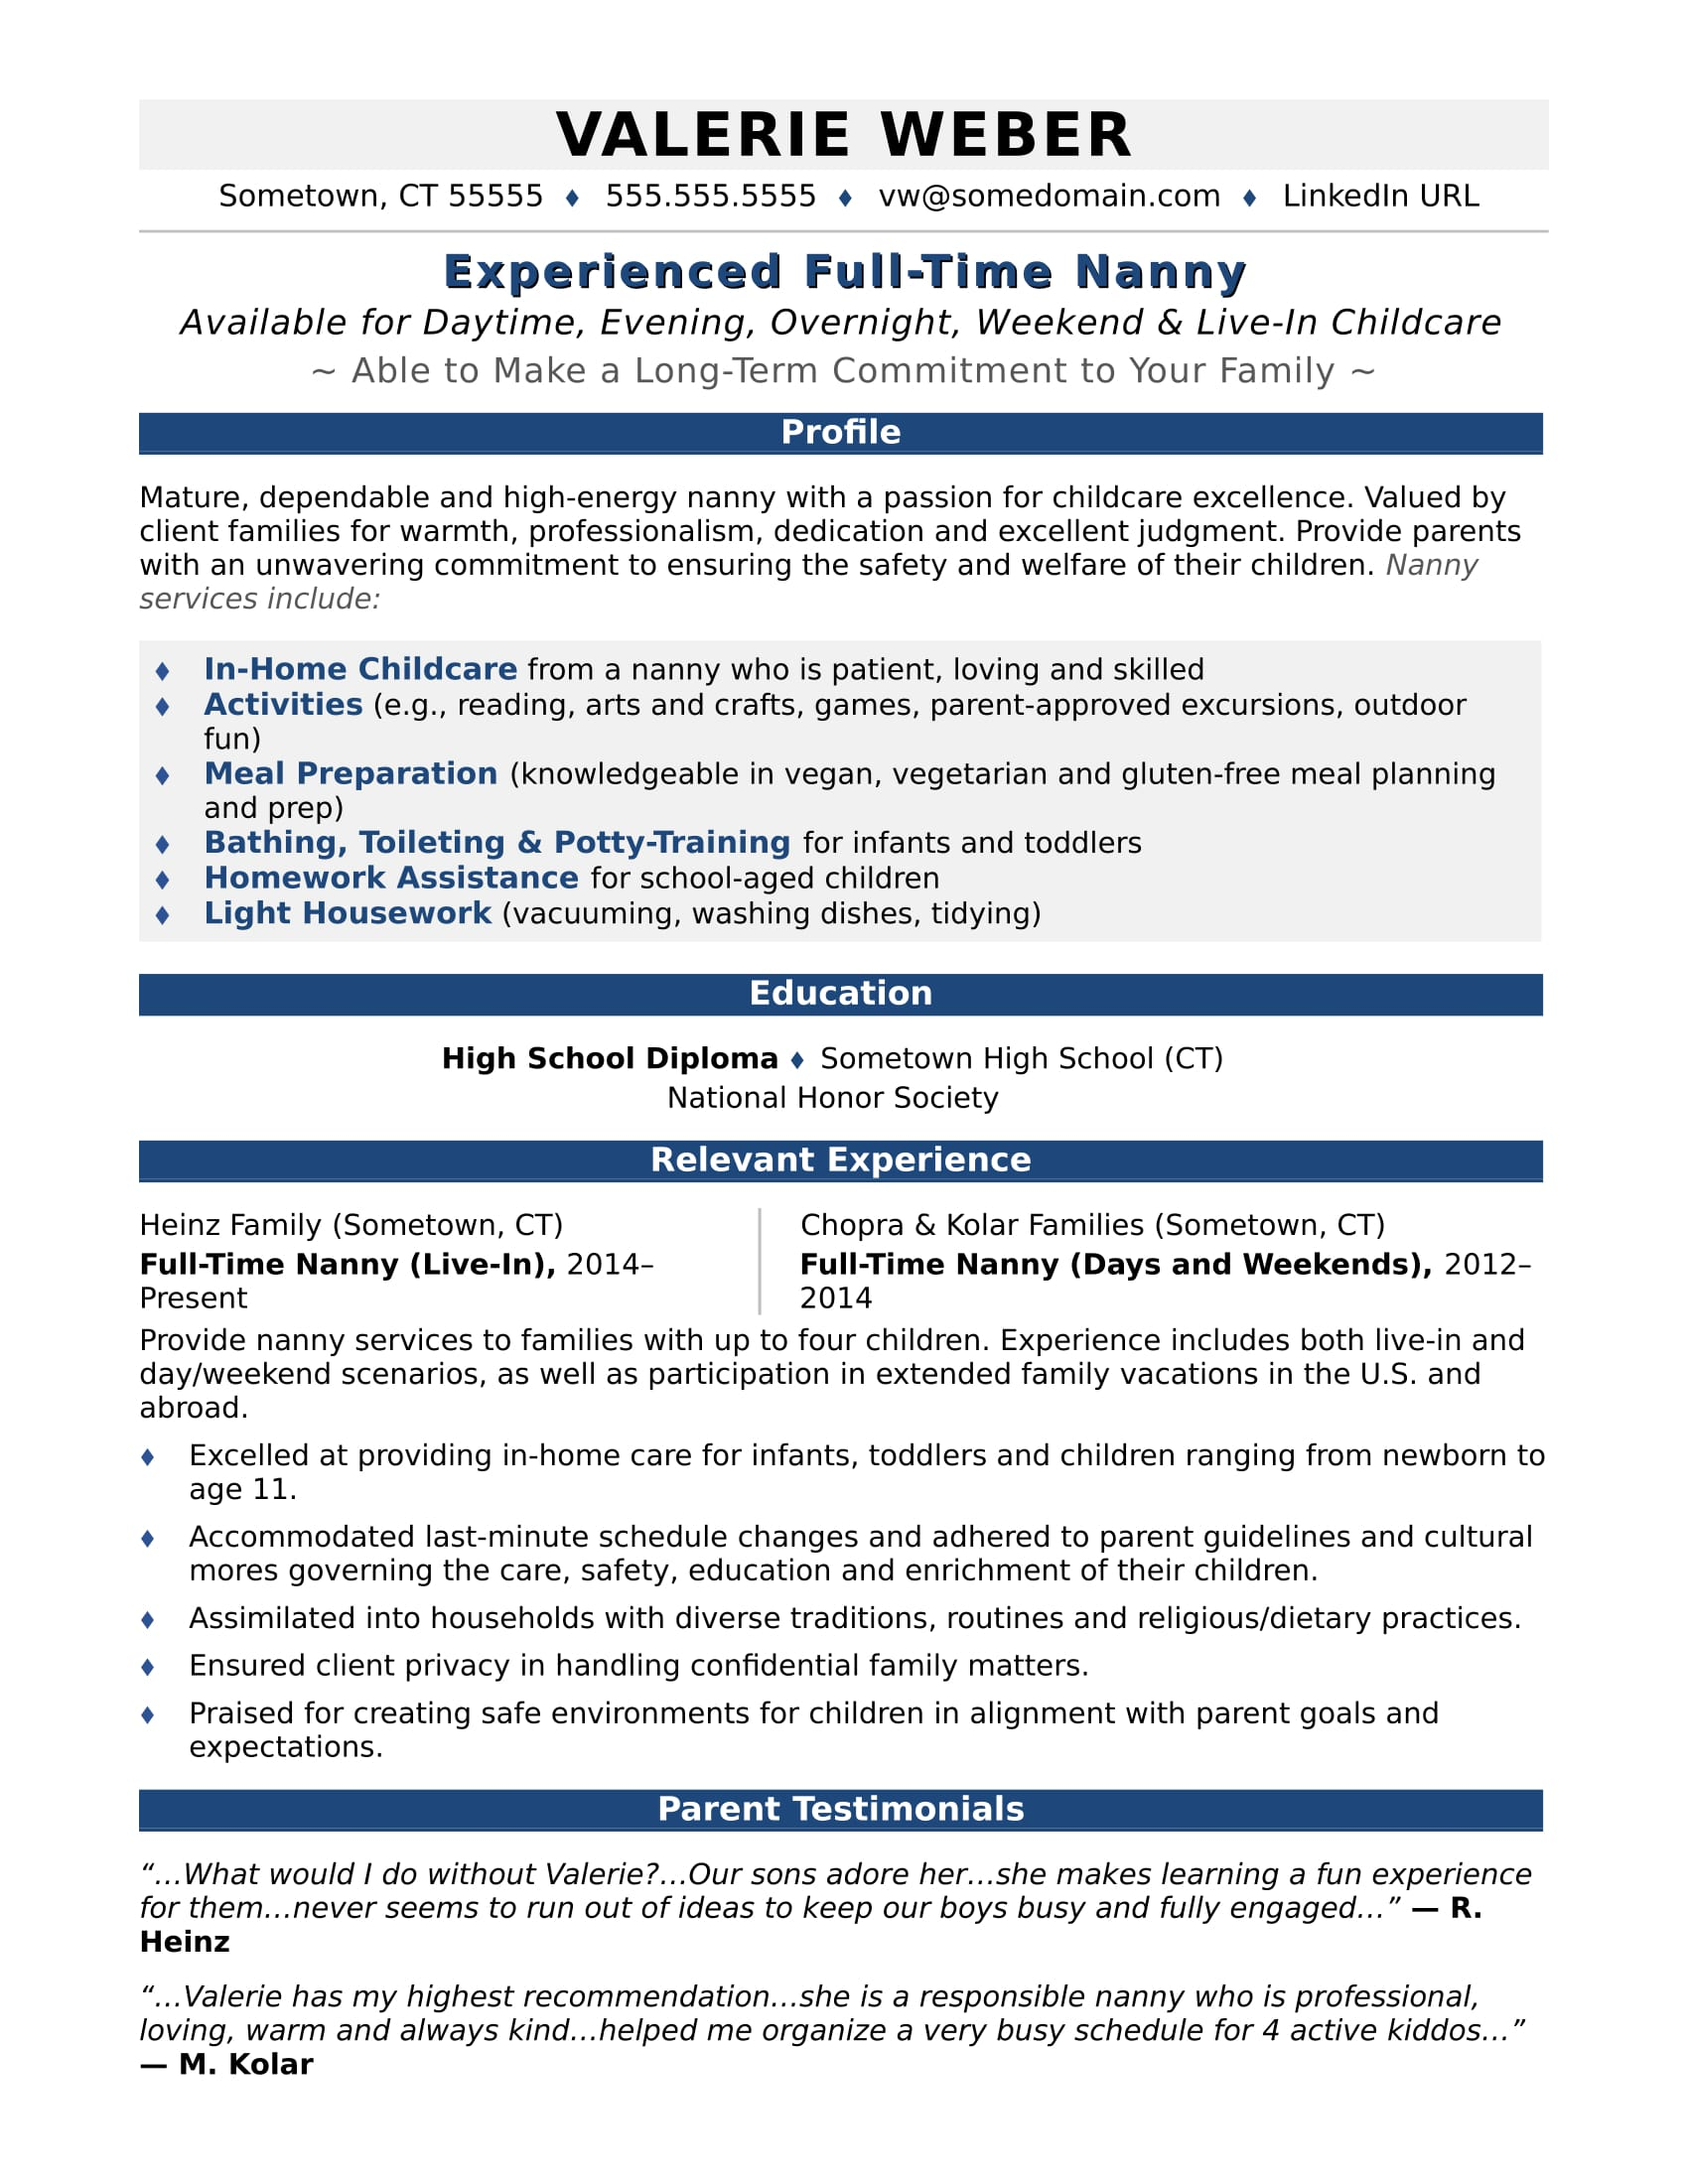 nanny resume sample monster samples for childcare positions accounting fresh graduate Resume Resume Samples For Childcare Positions